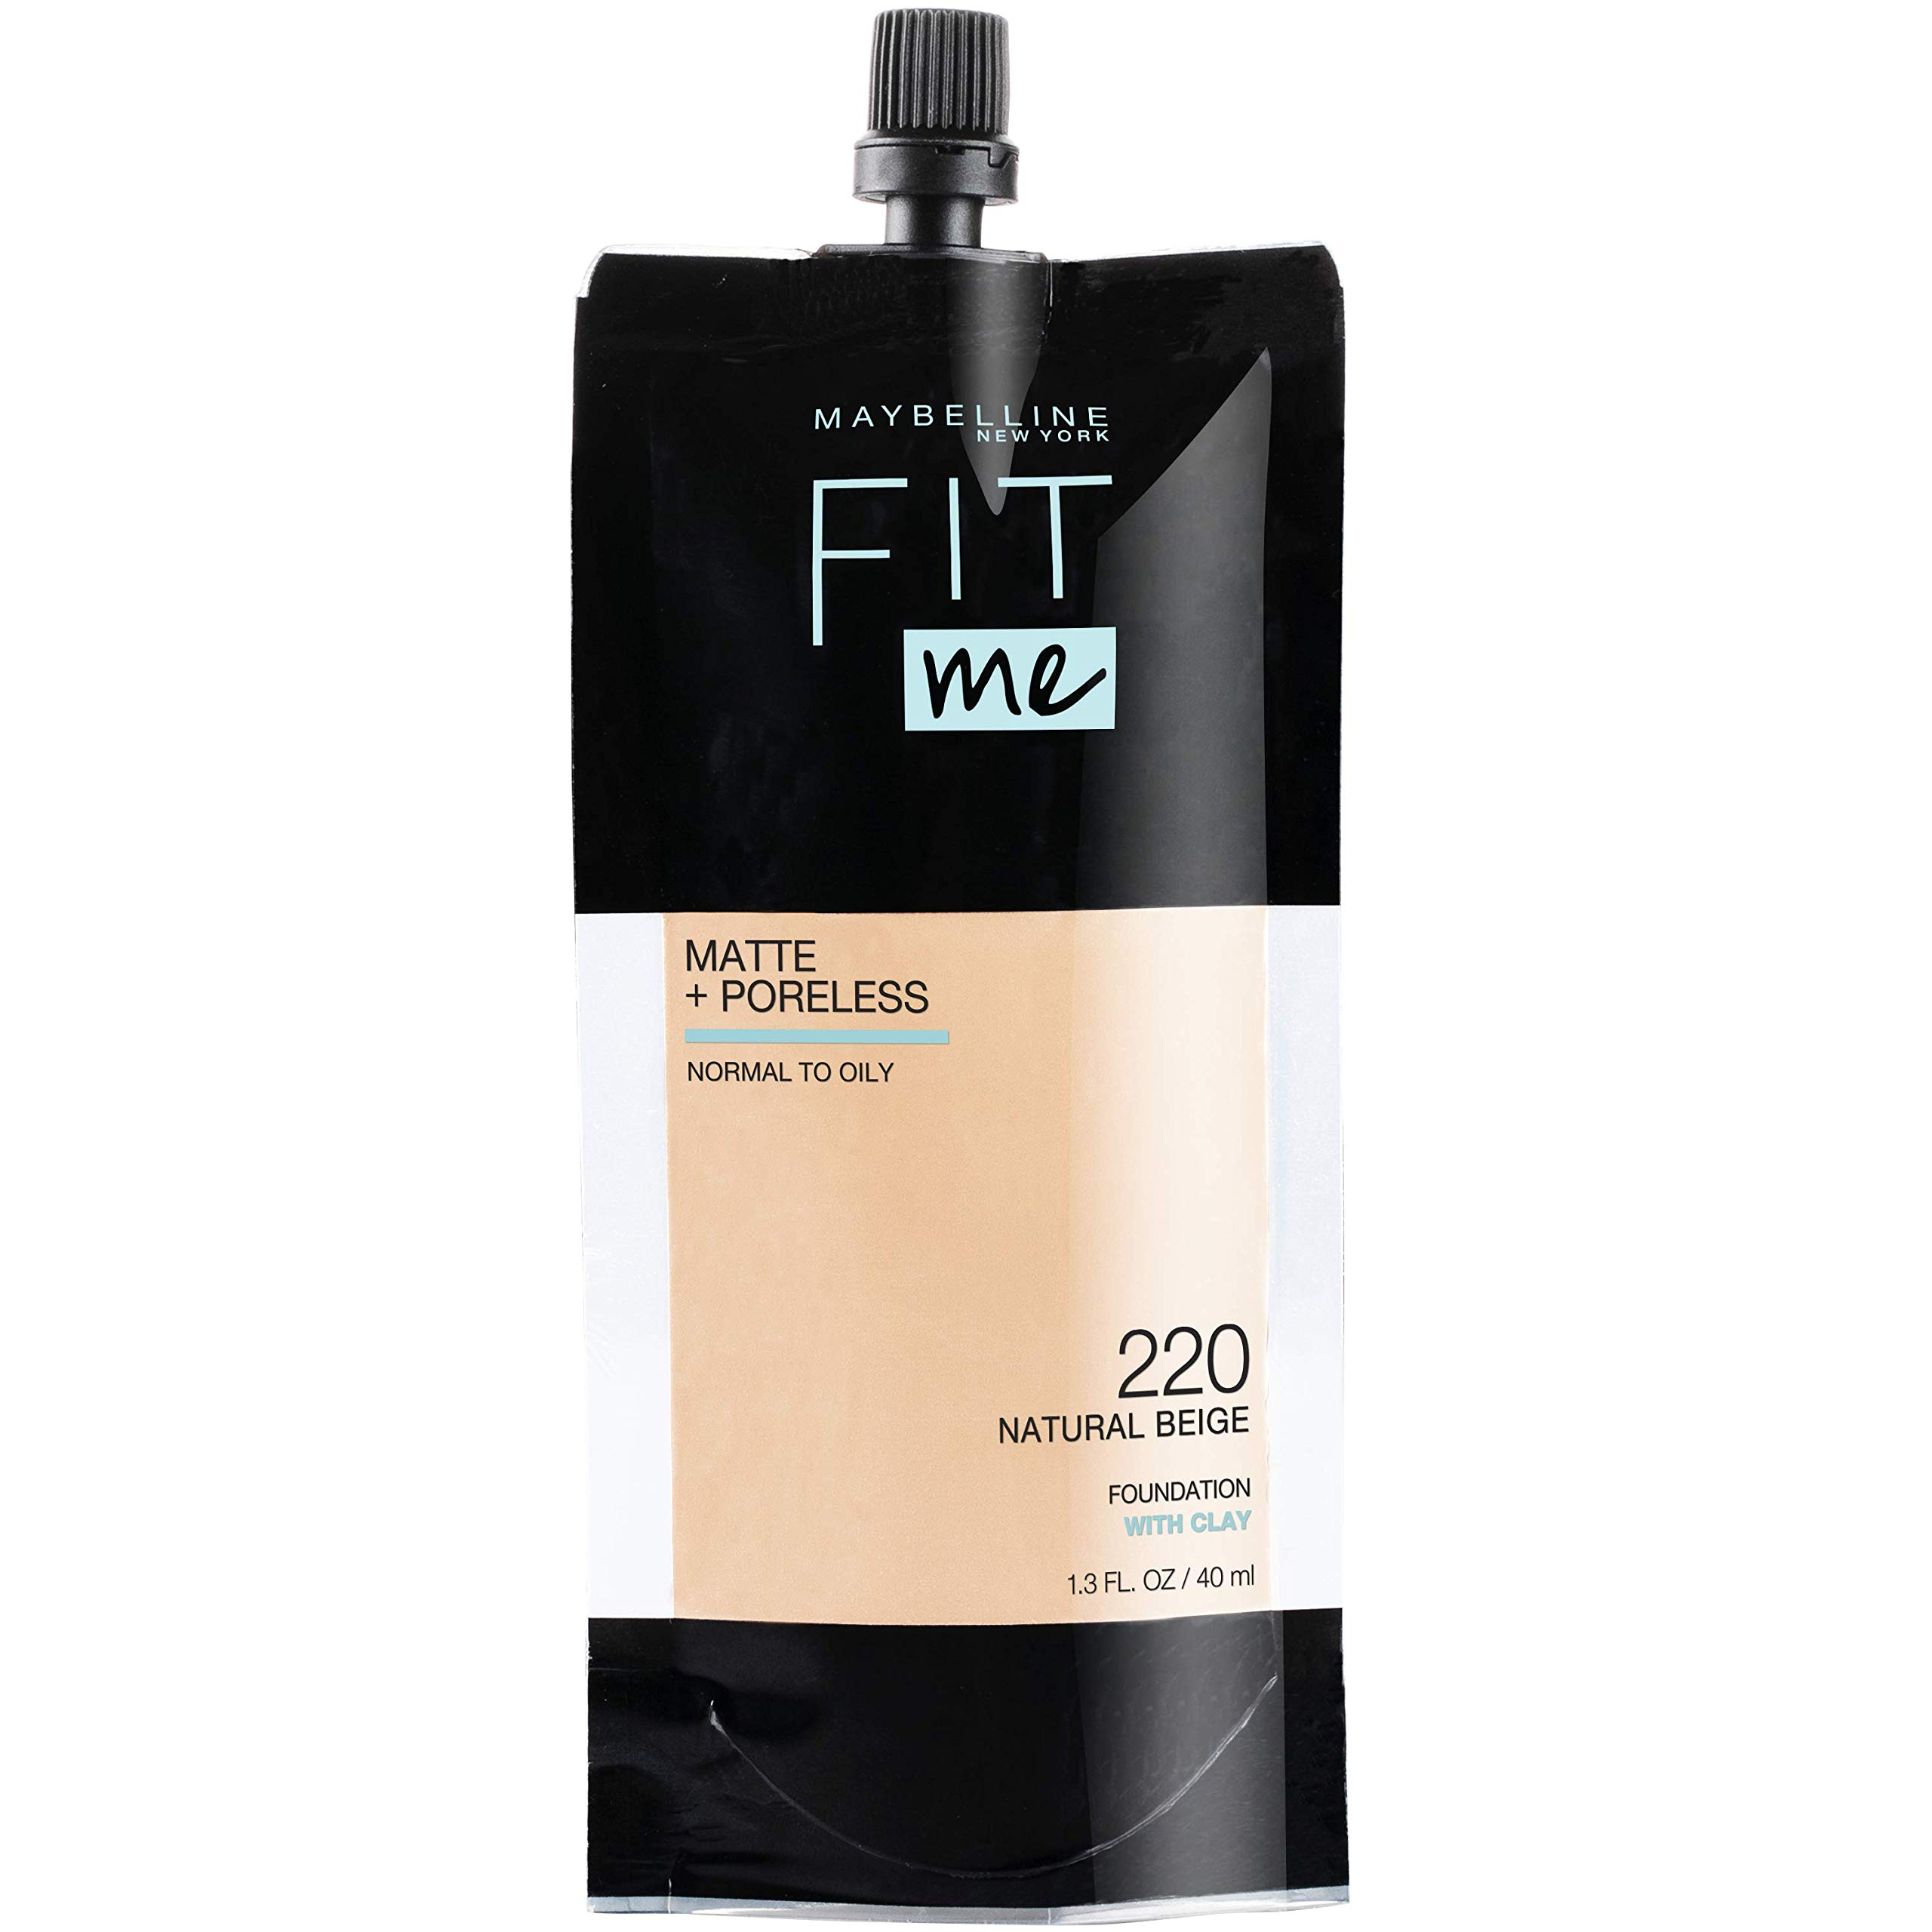 Maybelline Fit Me Matte + Poreless Liquid Foundation, Face Makeup, Mess-Free No Waste Pouch Format, Normal to Oily Skin Types, Natural Beige, 1.3 Fl Oz